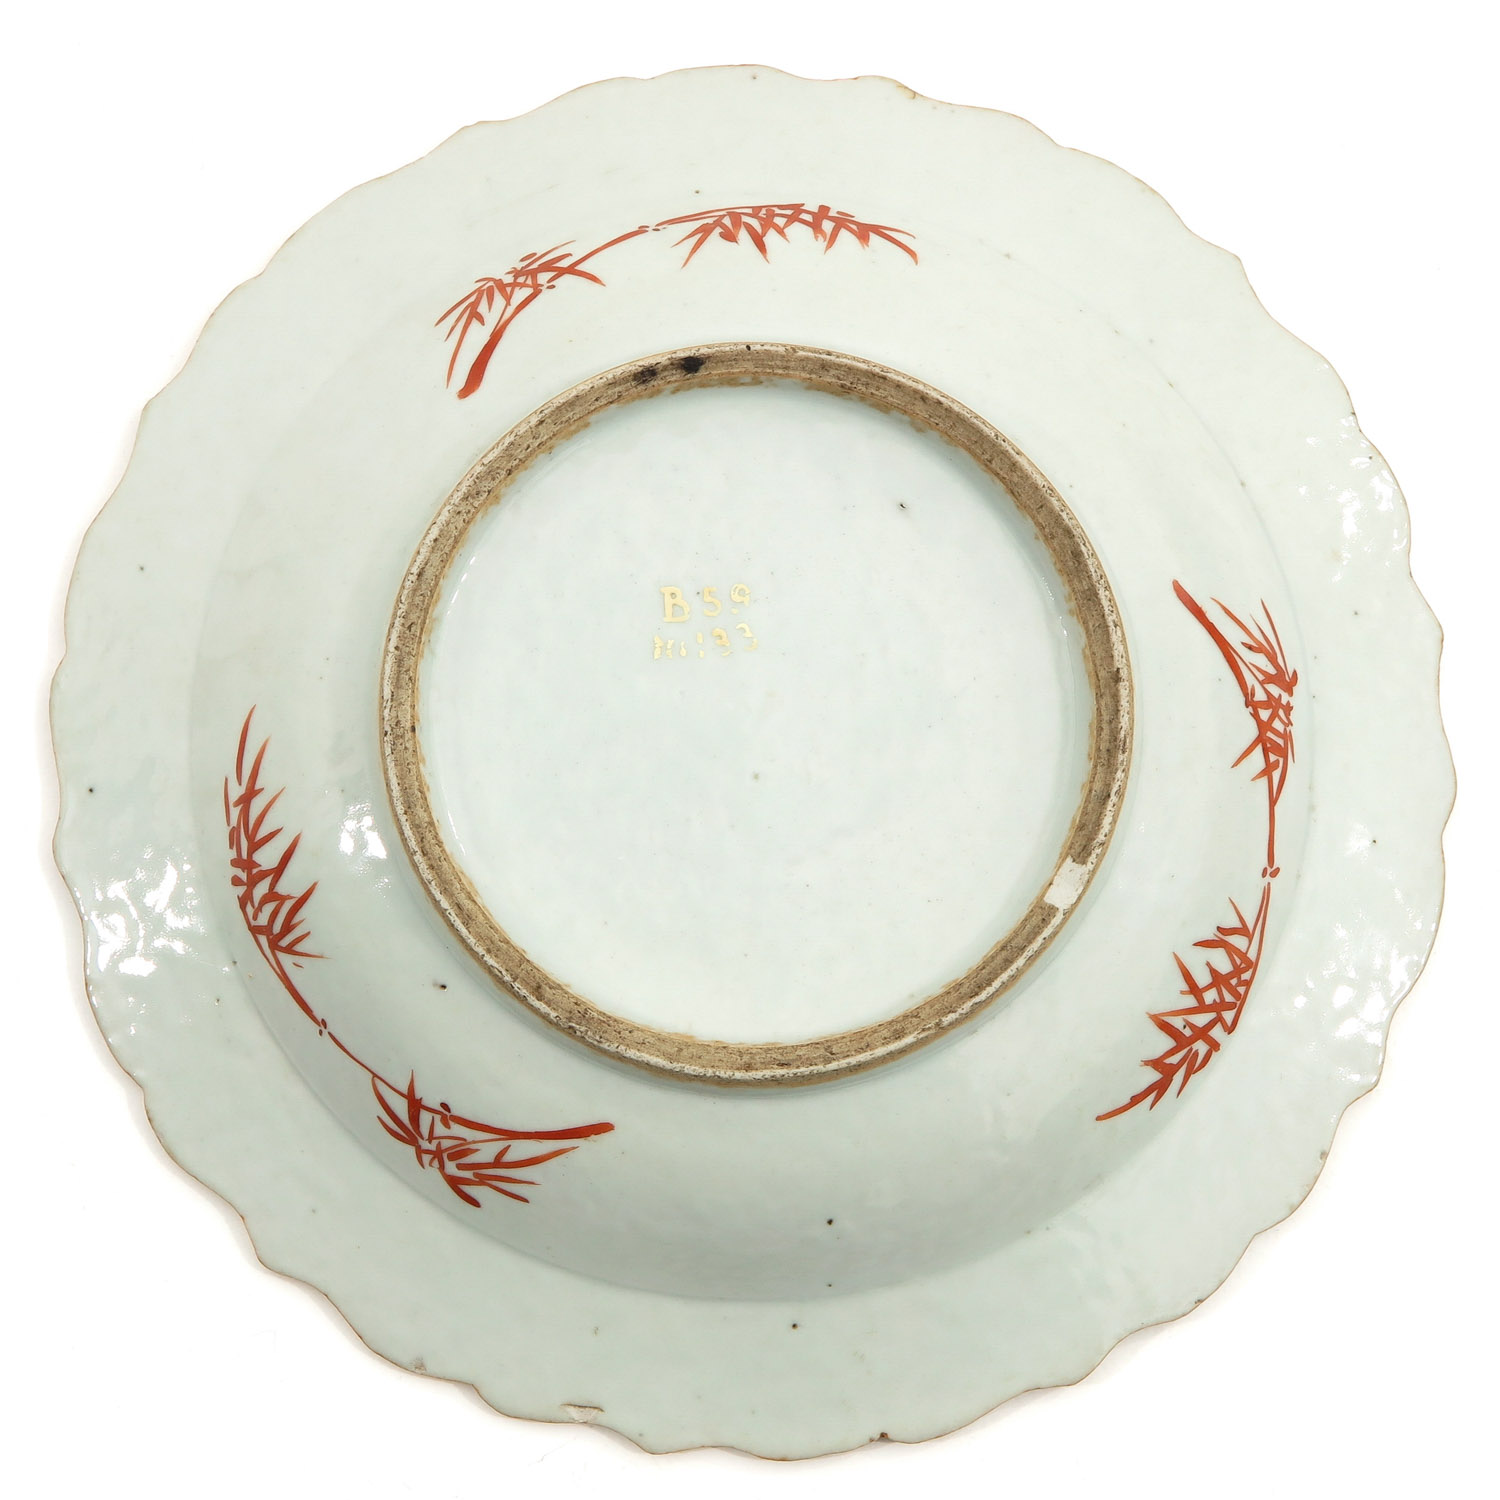 A Milk and Blood Decor Plate - Image 2 of 5